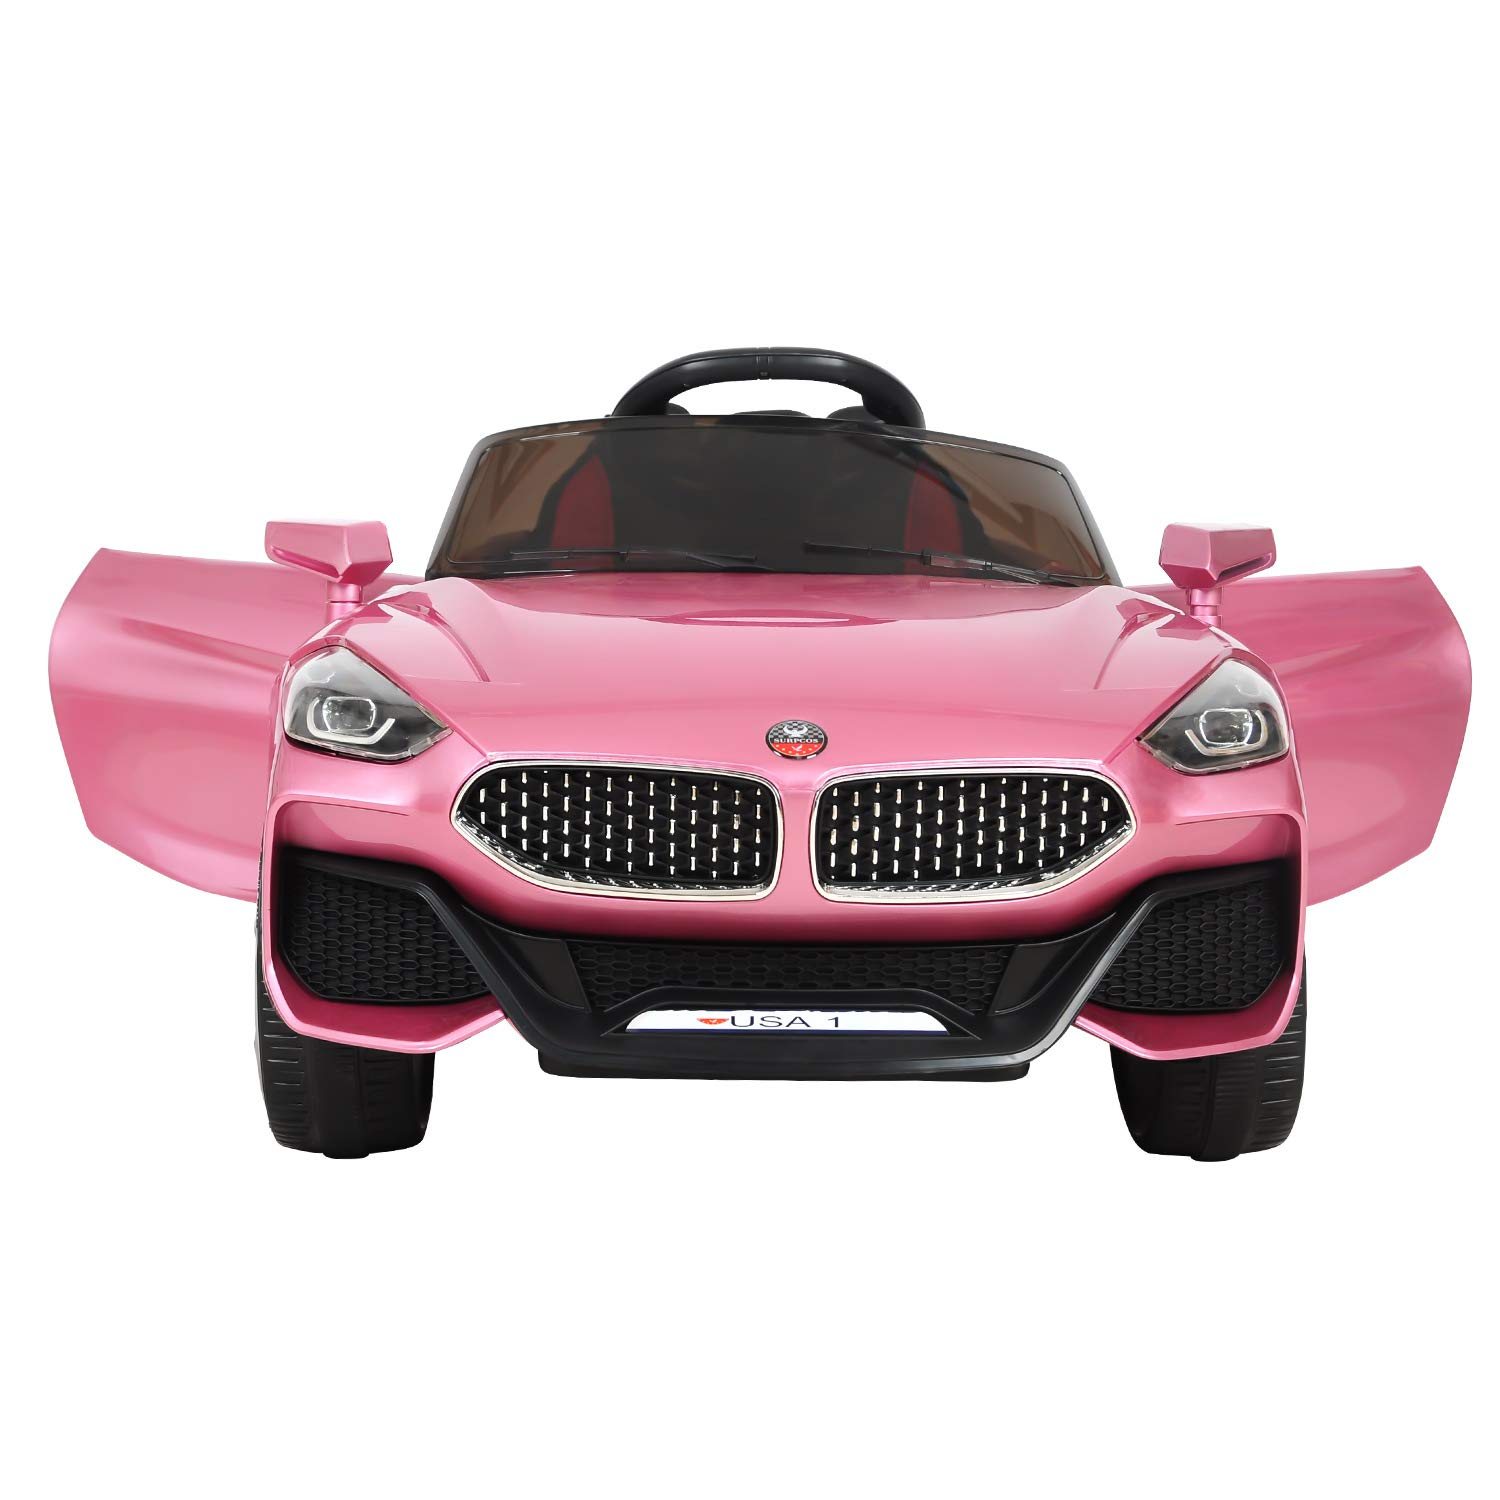 EOSAGA Ride On Car Toys, Electric 12 V RC Ride On Car with Remote Control Rechargeable Battery Powered Electric Car with 2 Motors, Parental Remote ...